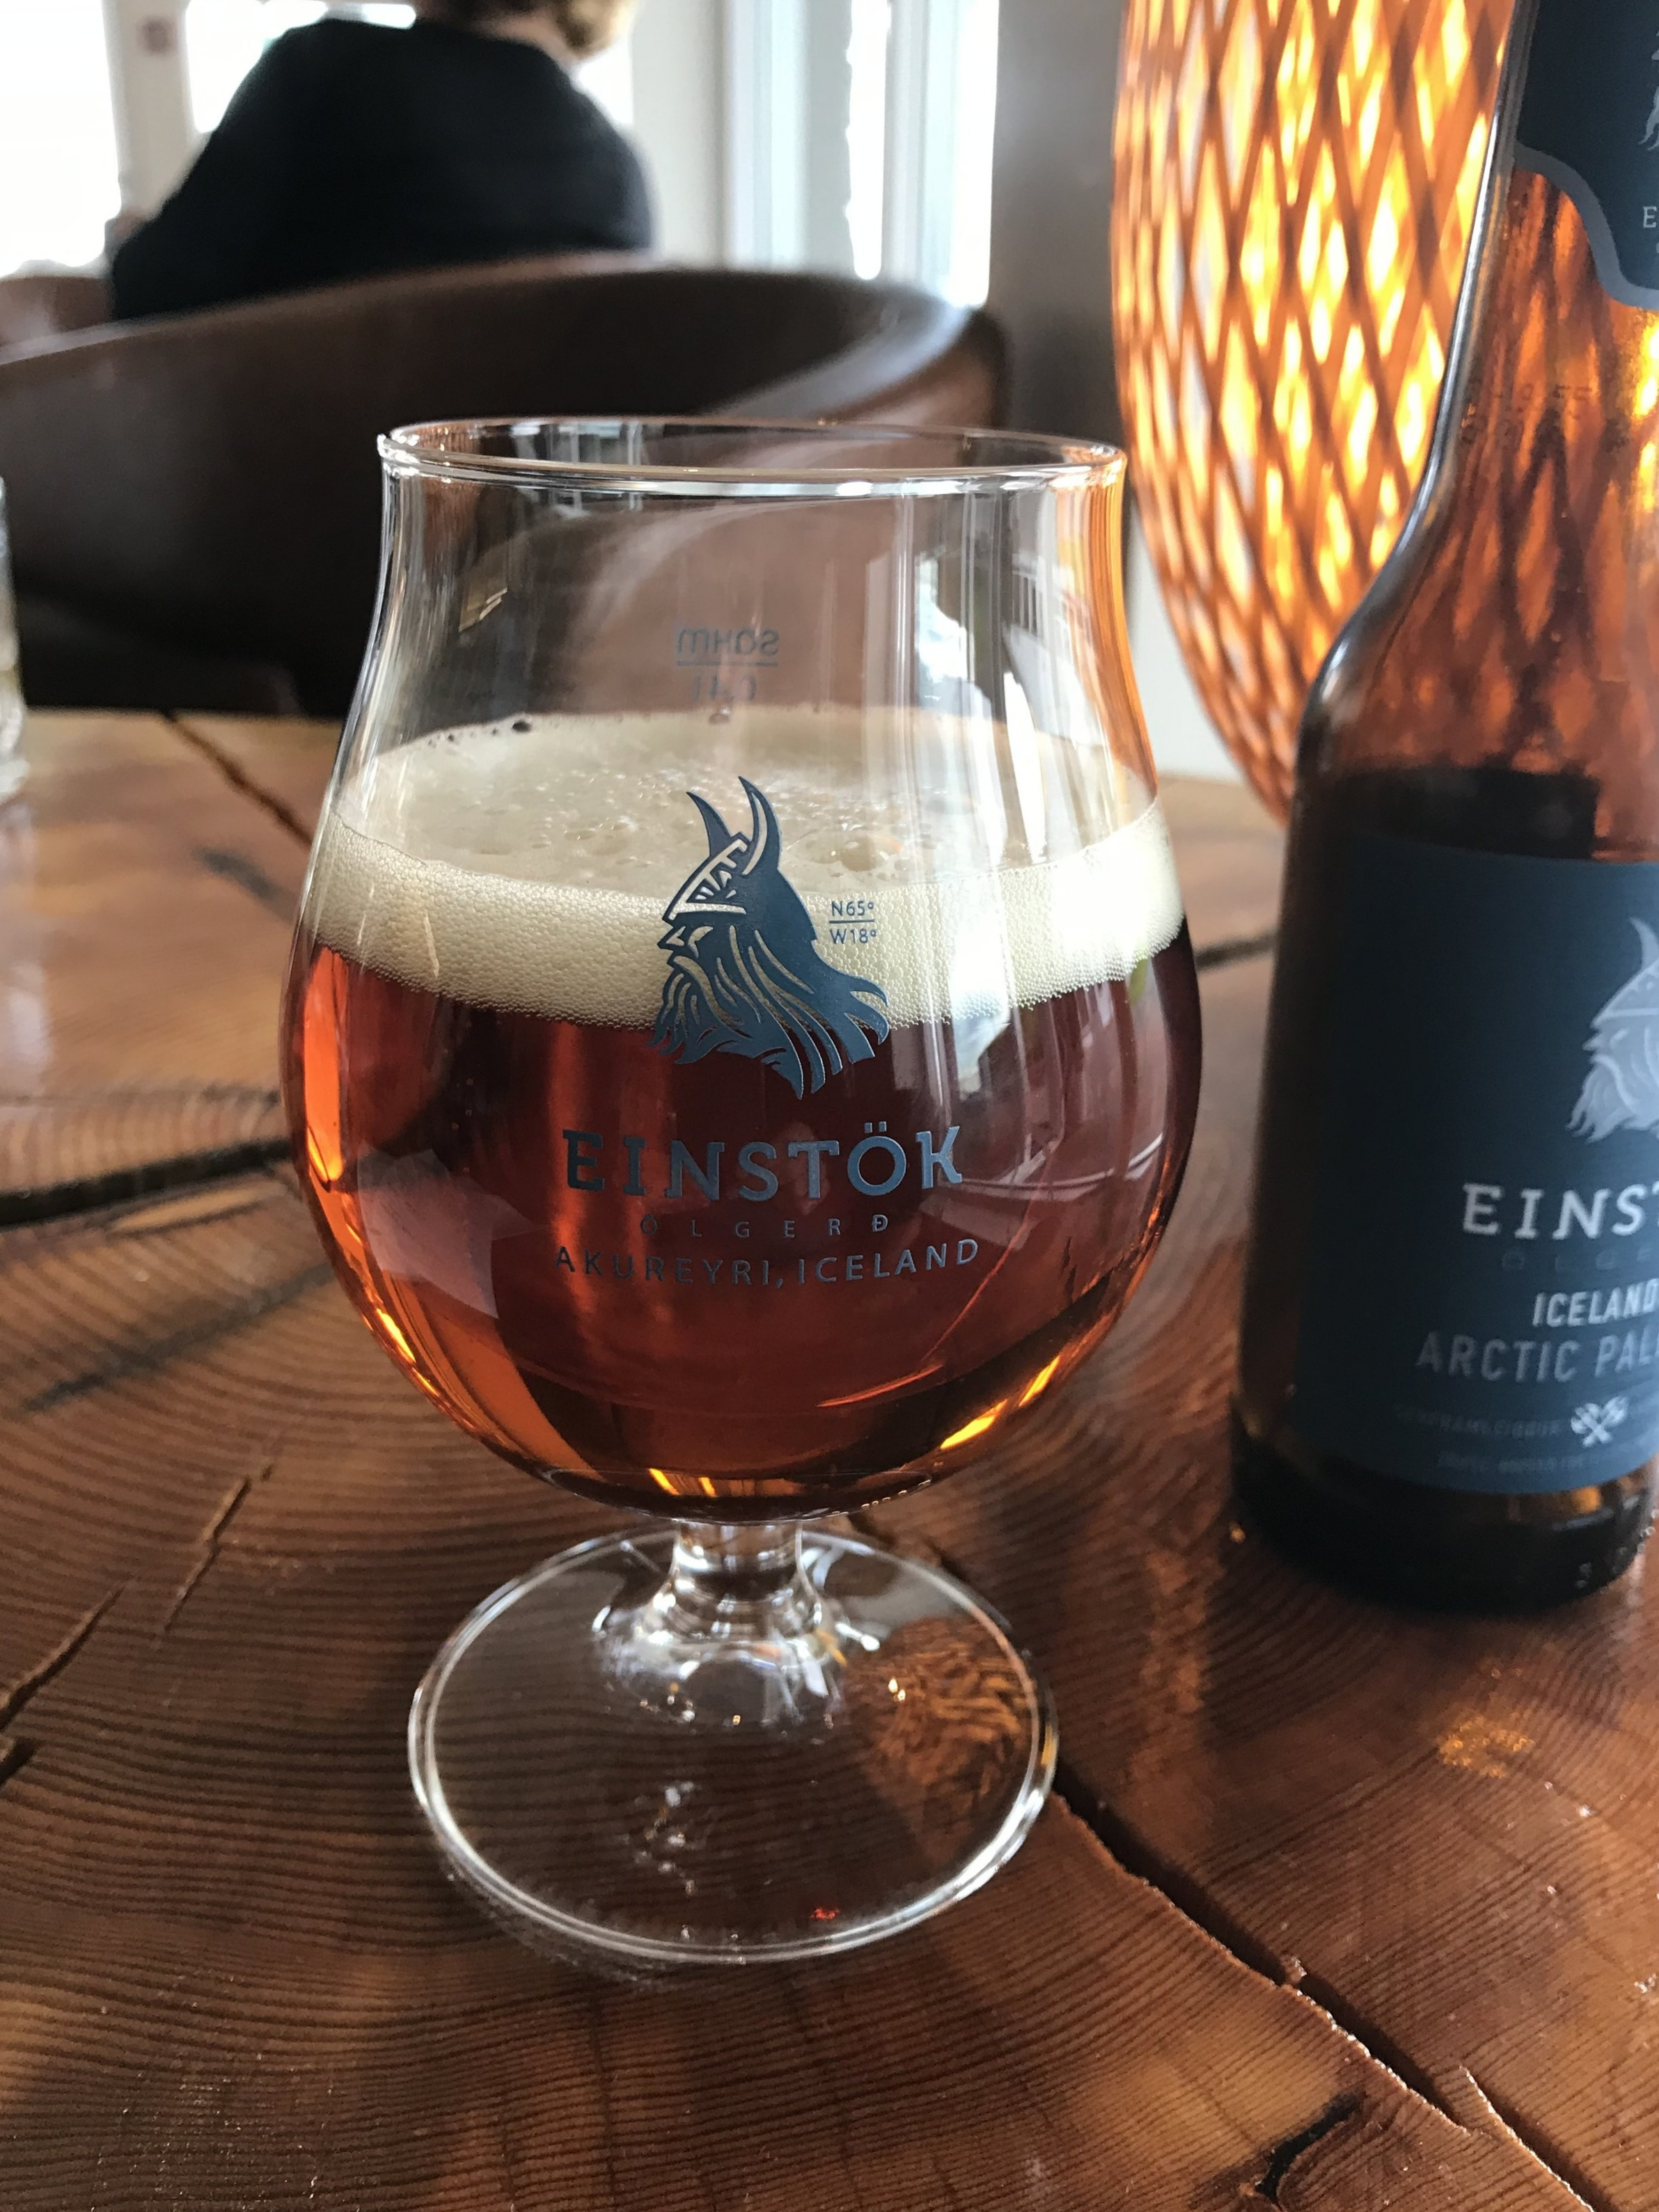 Einstok Arctic Pale Ale--one of Iceland's many excellent beers.